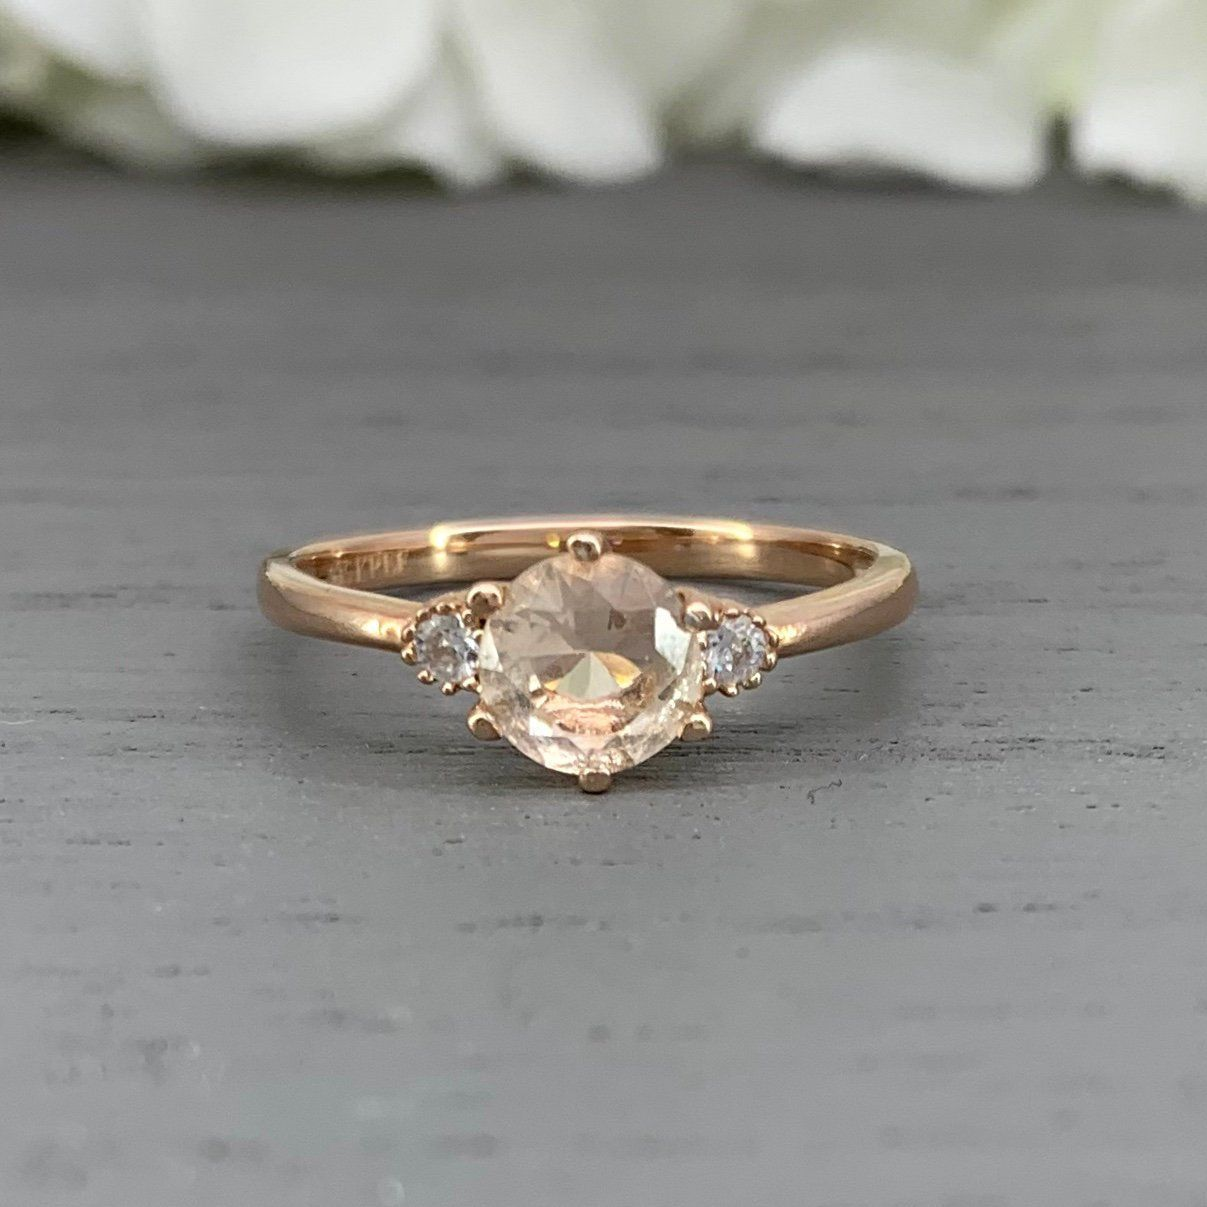 Natural Peach Morganite Ring Art Deco Oval Morganite Diamond Simulated Sterling Silver Promise Engagement Ring